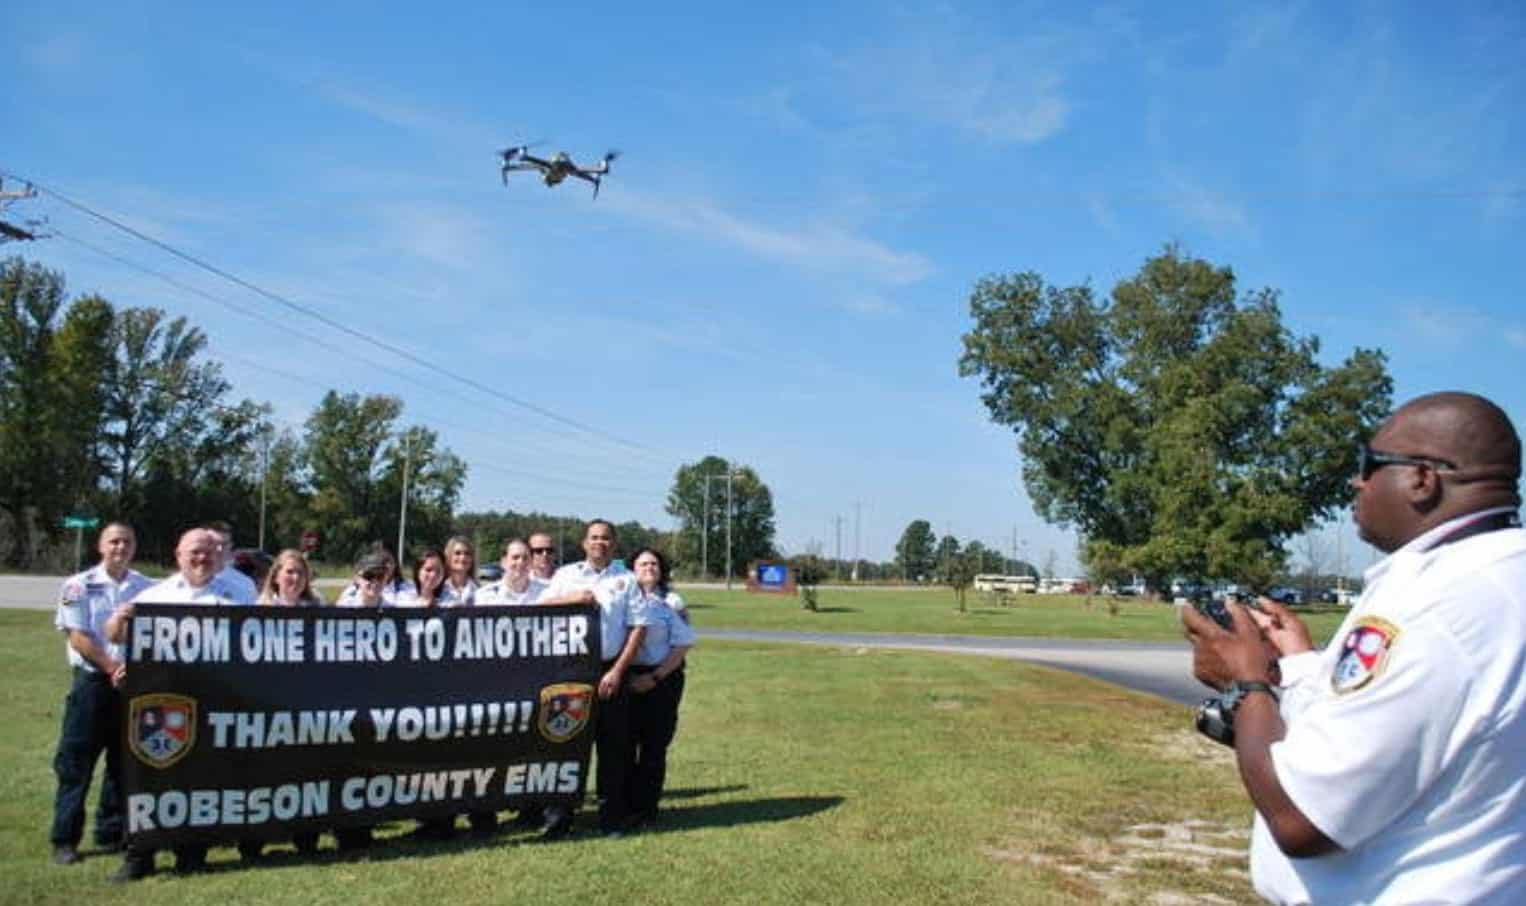 Drone group photo of EMS workers outside Robeson County Emergency Operations Center